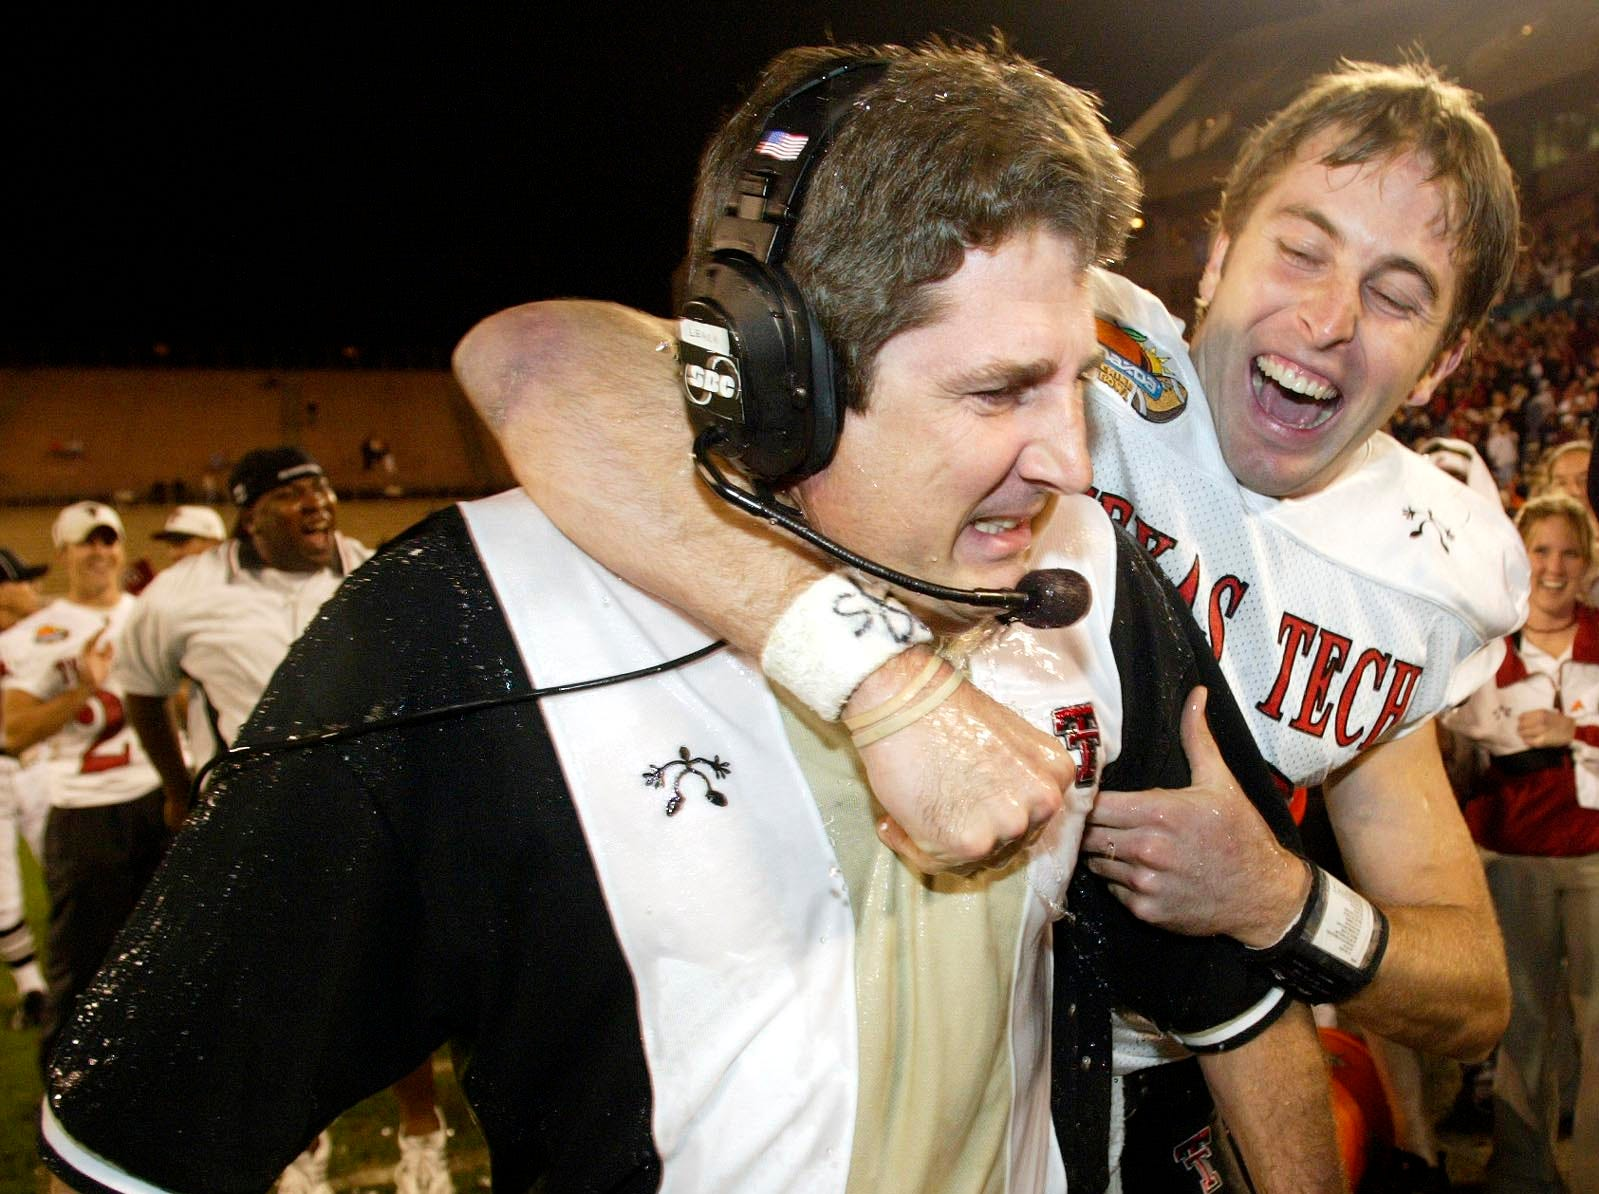 Texas Tech quarterback Kliff Kingsbury celebrates with head coach Mike Leach in the final minutes of the fourth quarter against Clemson at the Mazda Tangerine Bowl on Monday, Dec. 23, 2002, in Orlando, Fla.